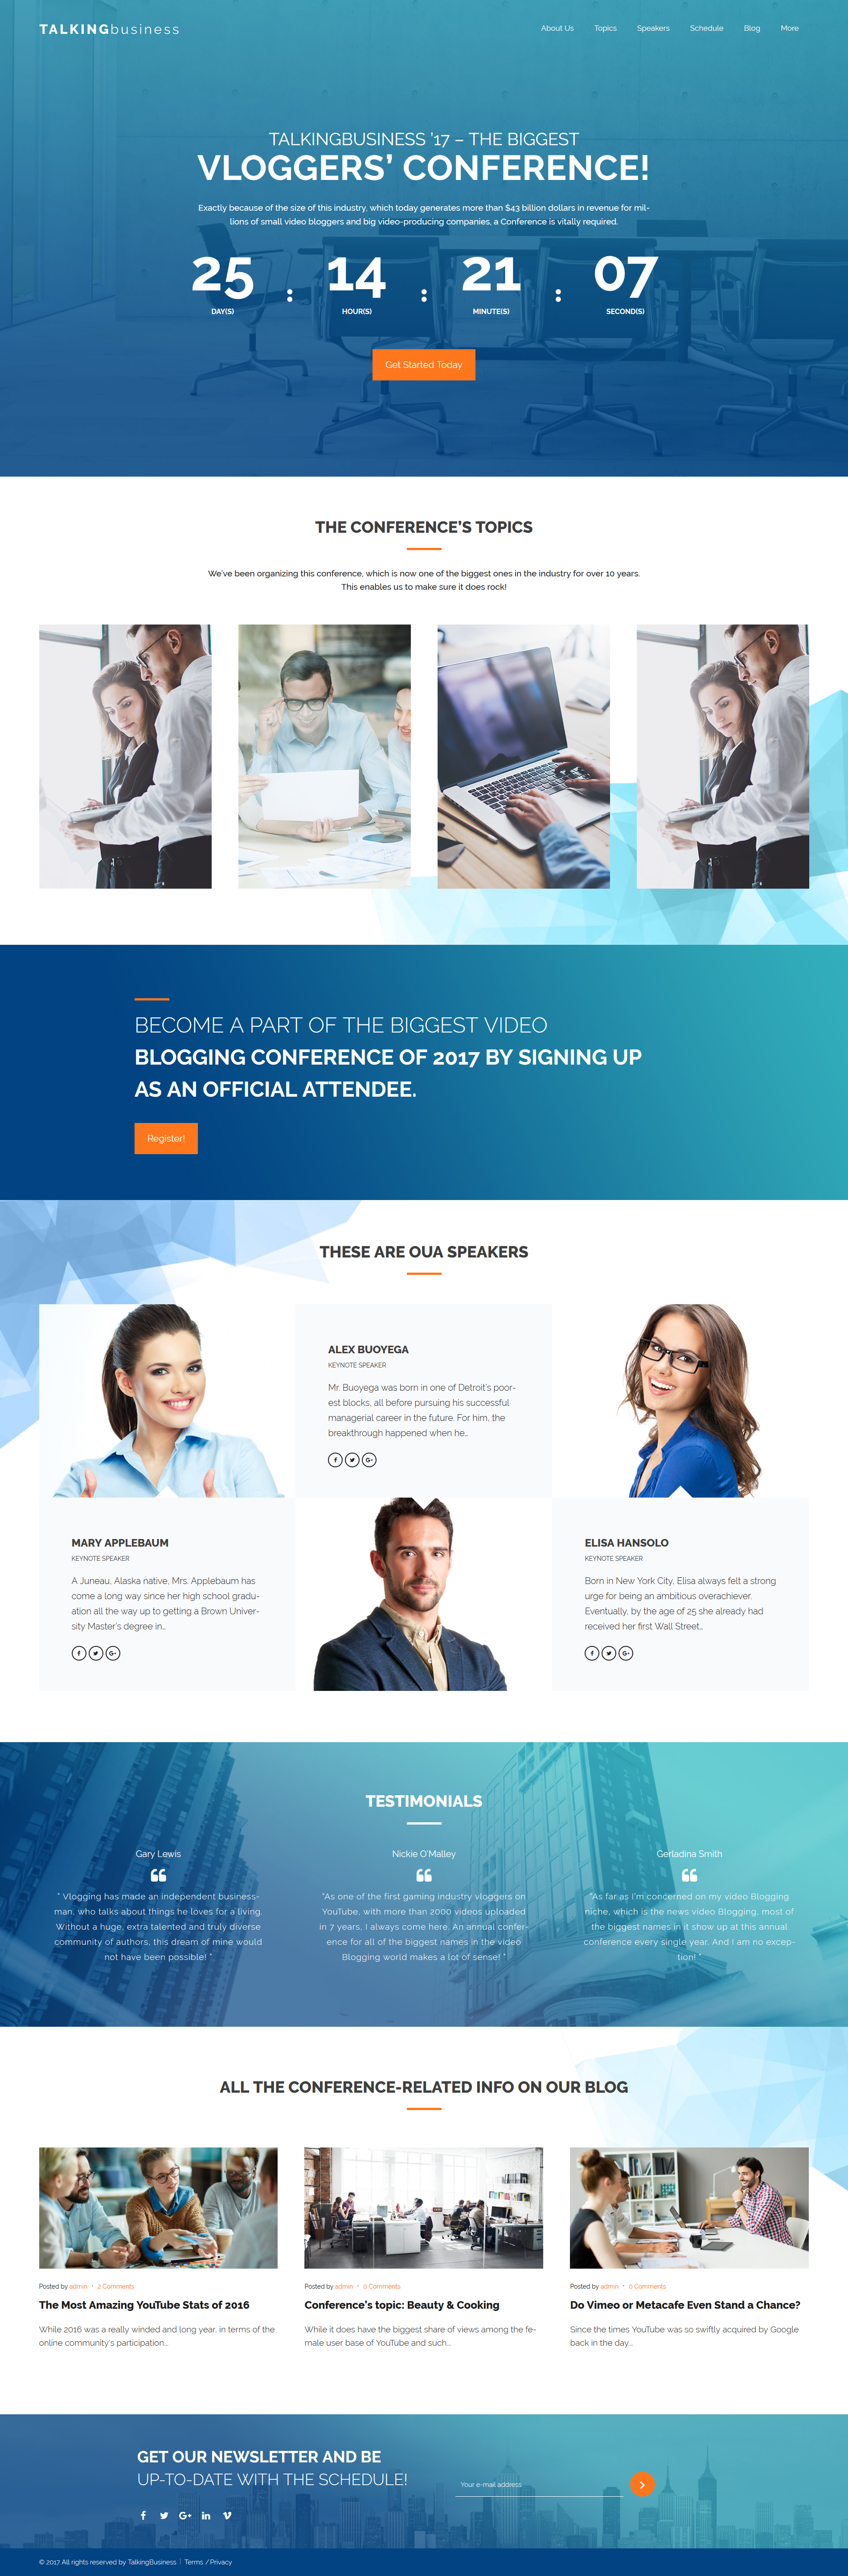 Talking Business - Business Coaching & Consulting WordPress Theme